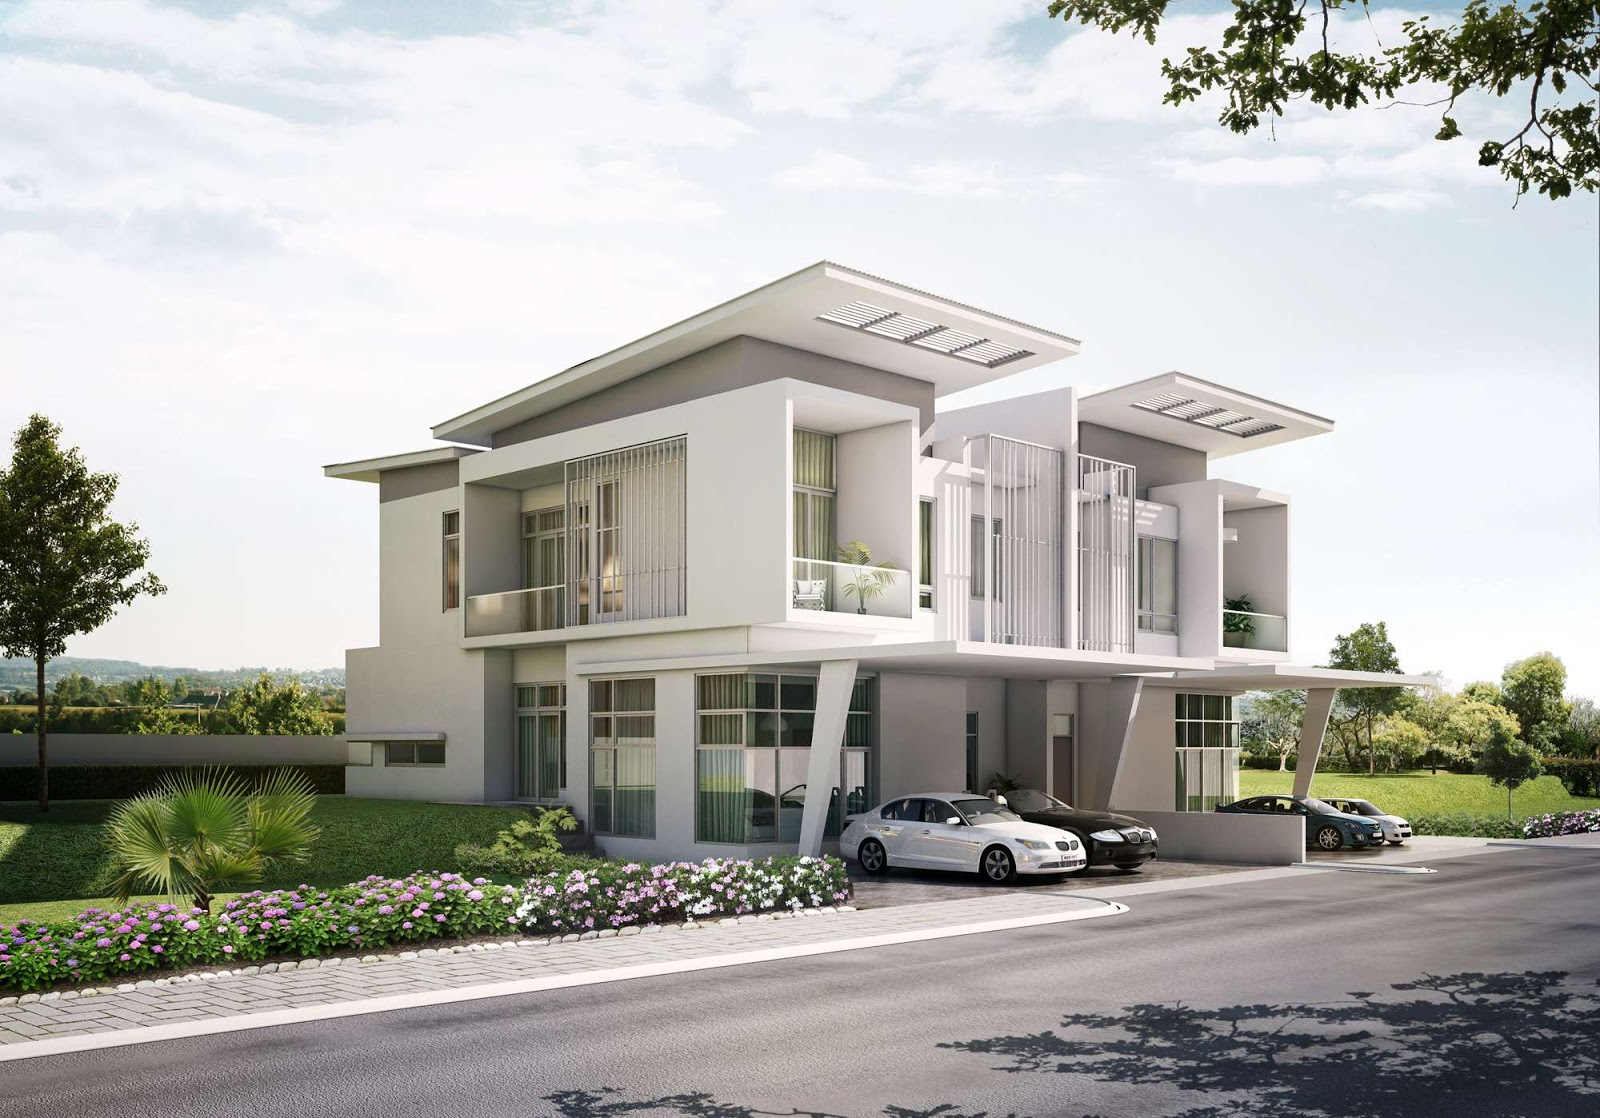 New home designs latest singapore modern homes exterior for Simple house front design